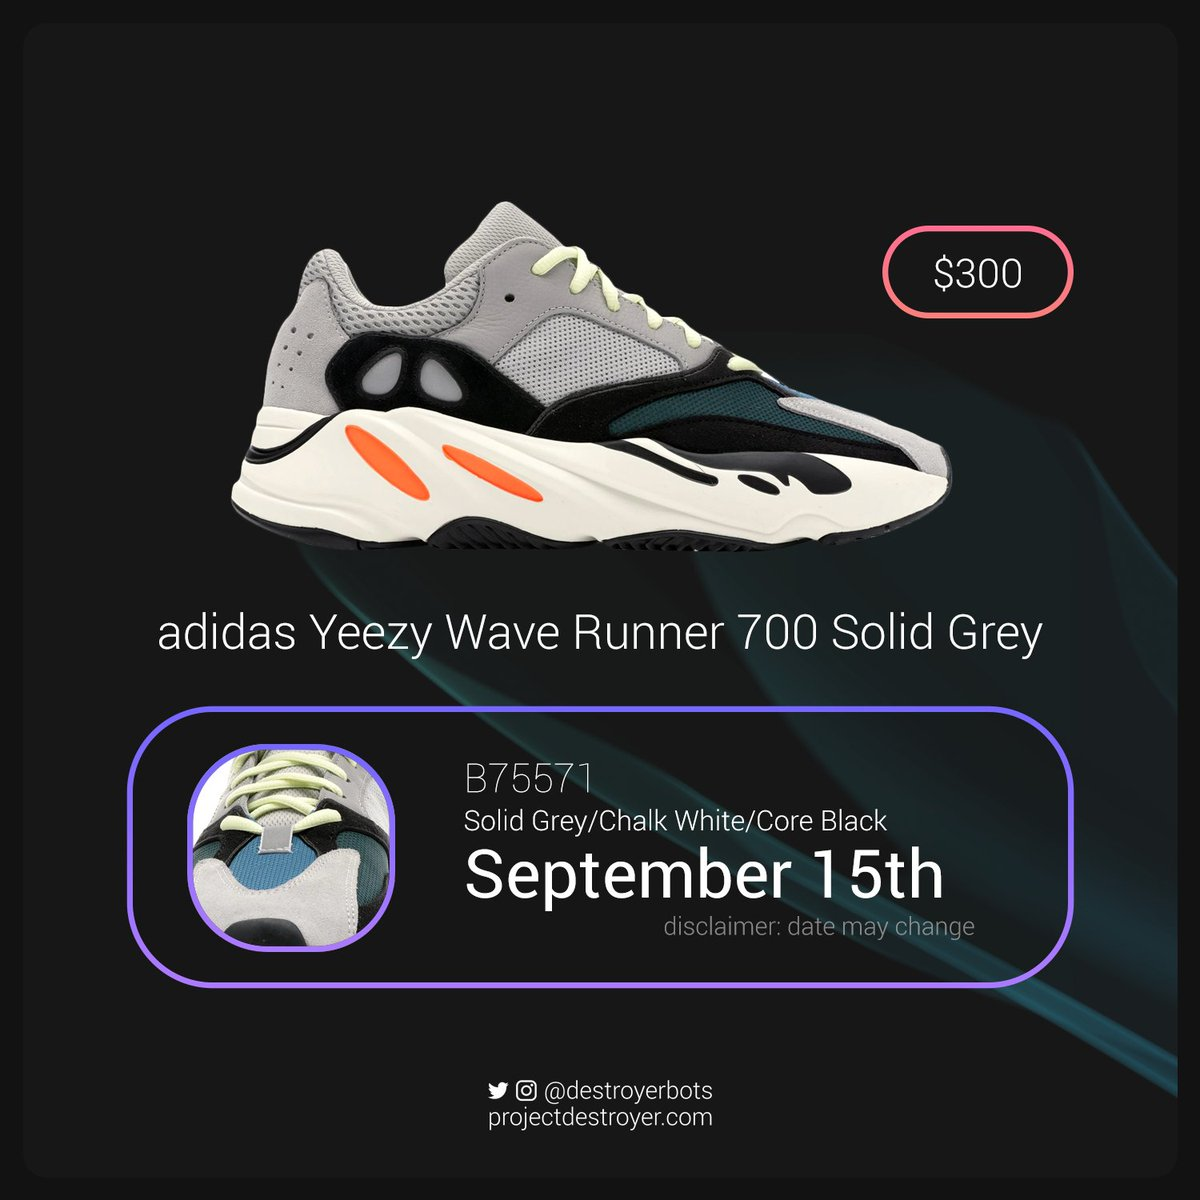 11a28cc89 There has been an announcement recently stating the Yeezy 700 Wave Runners  have been rescheduled for a release date of September 15th.